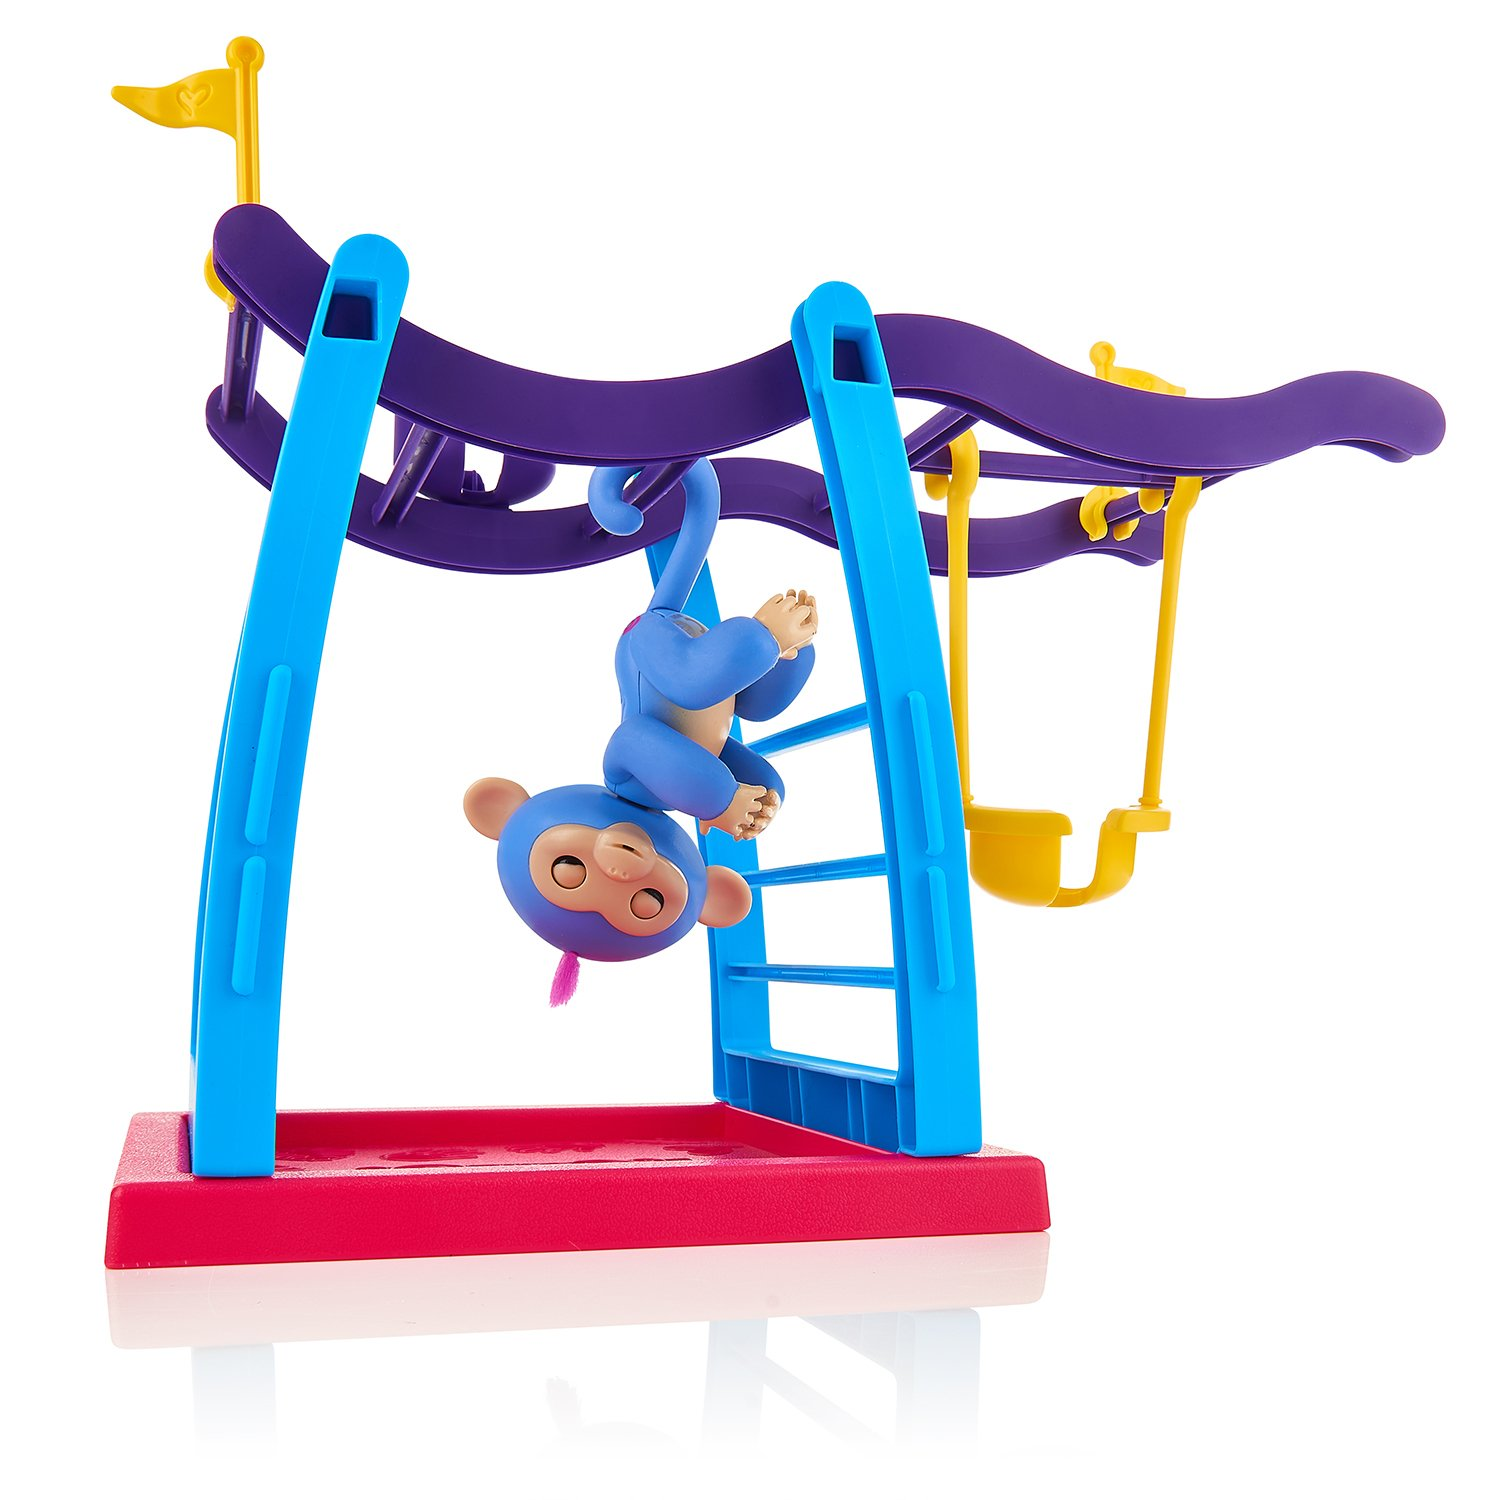 Amazon WowWee 3731 Fingerlings Spielset Kletterstange mit